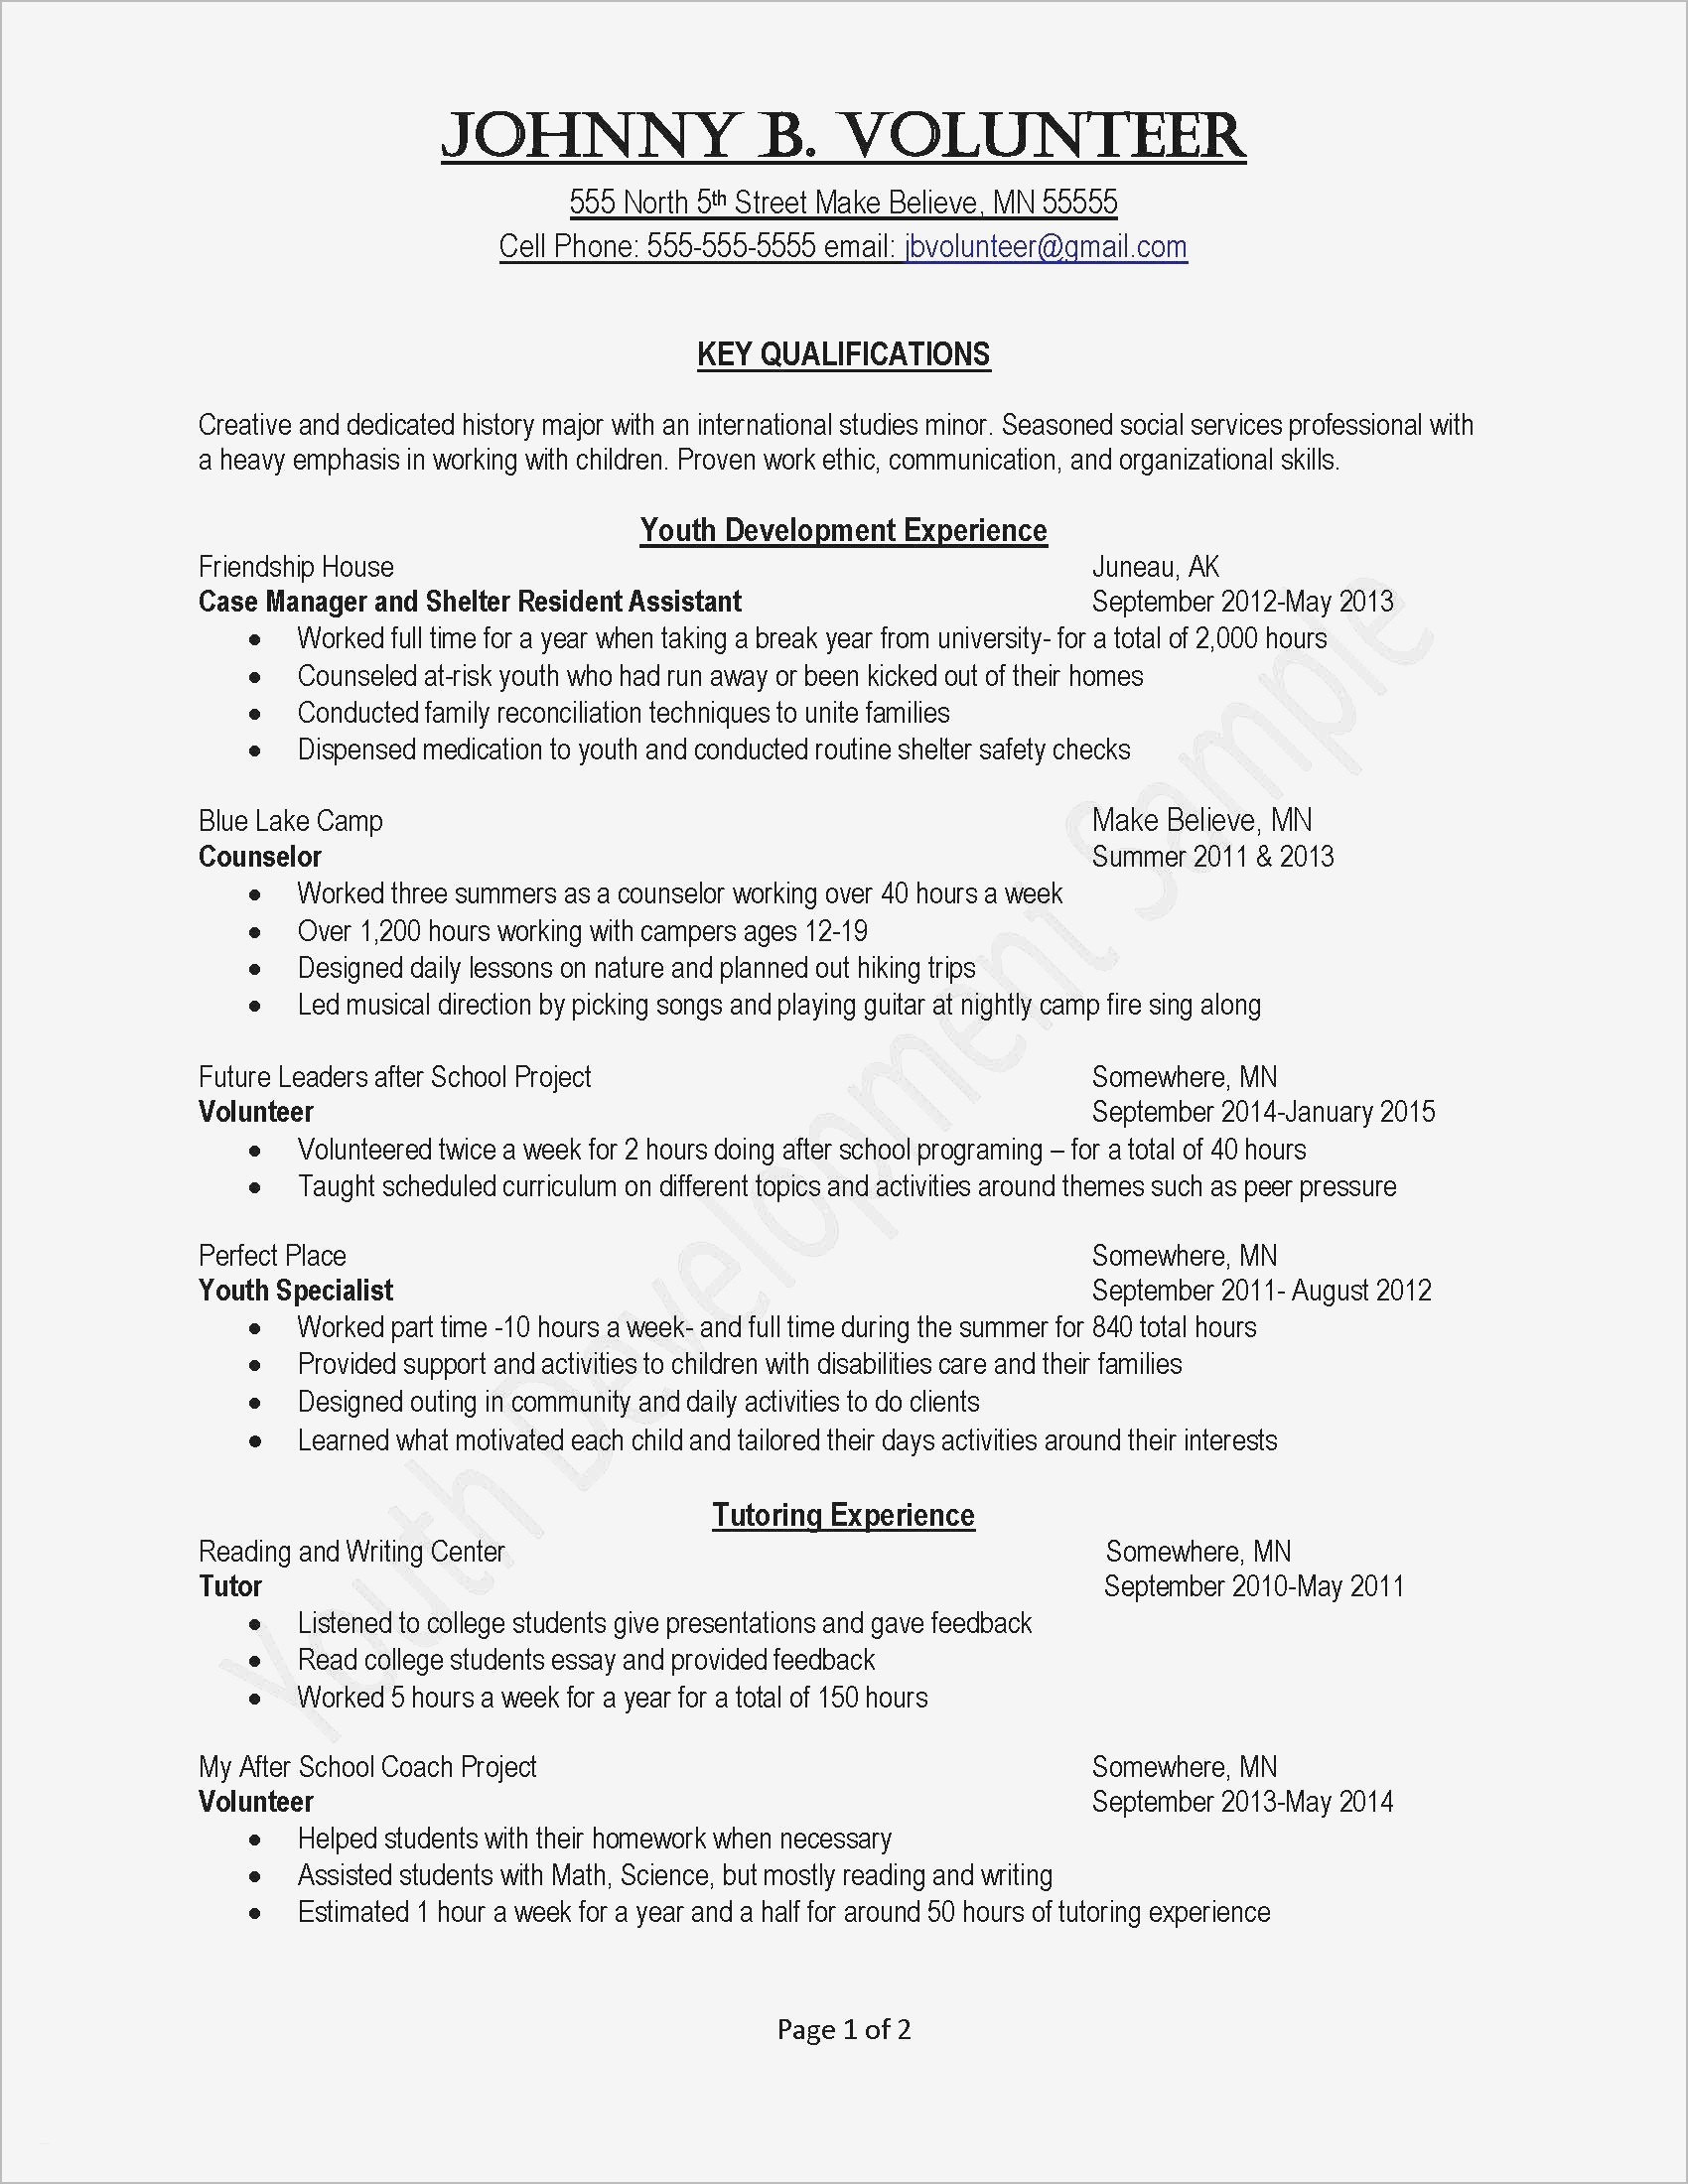 Letter Of Interest Template Free - Free Resume Website Template Valid Job Fer Letter Template Us Copy